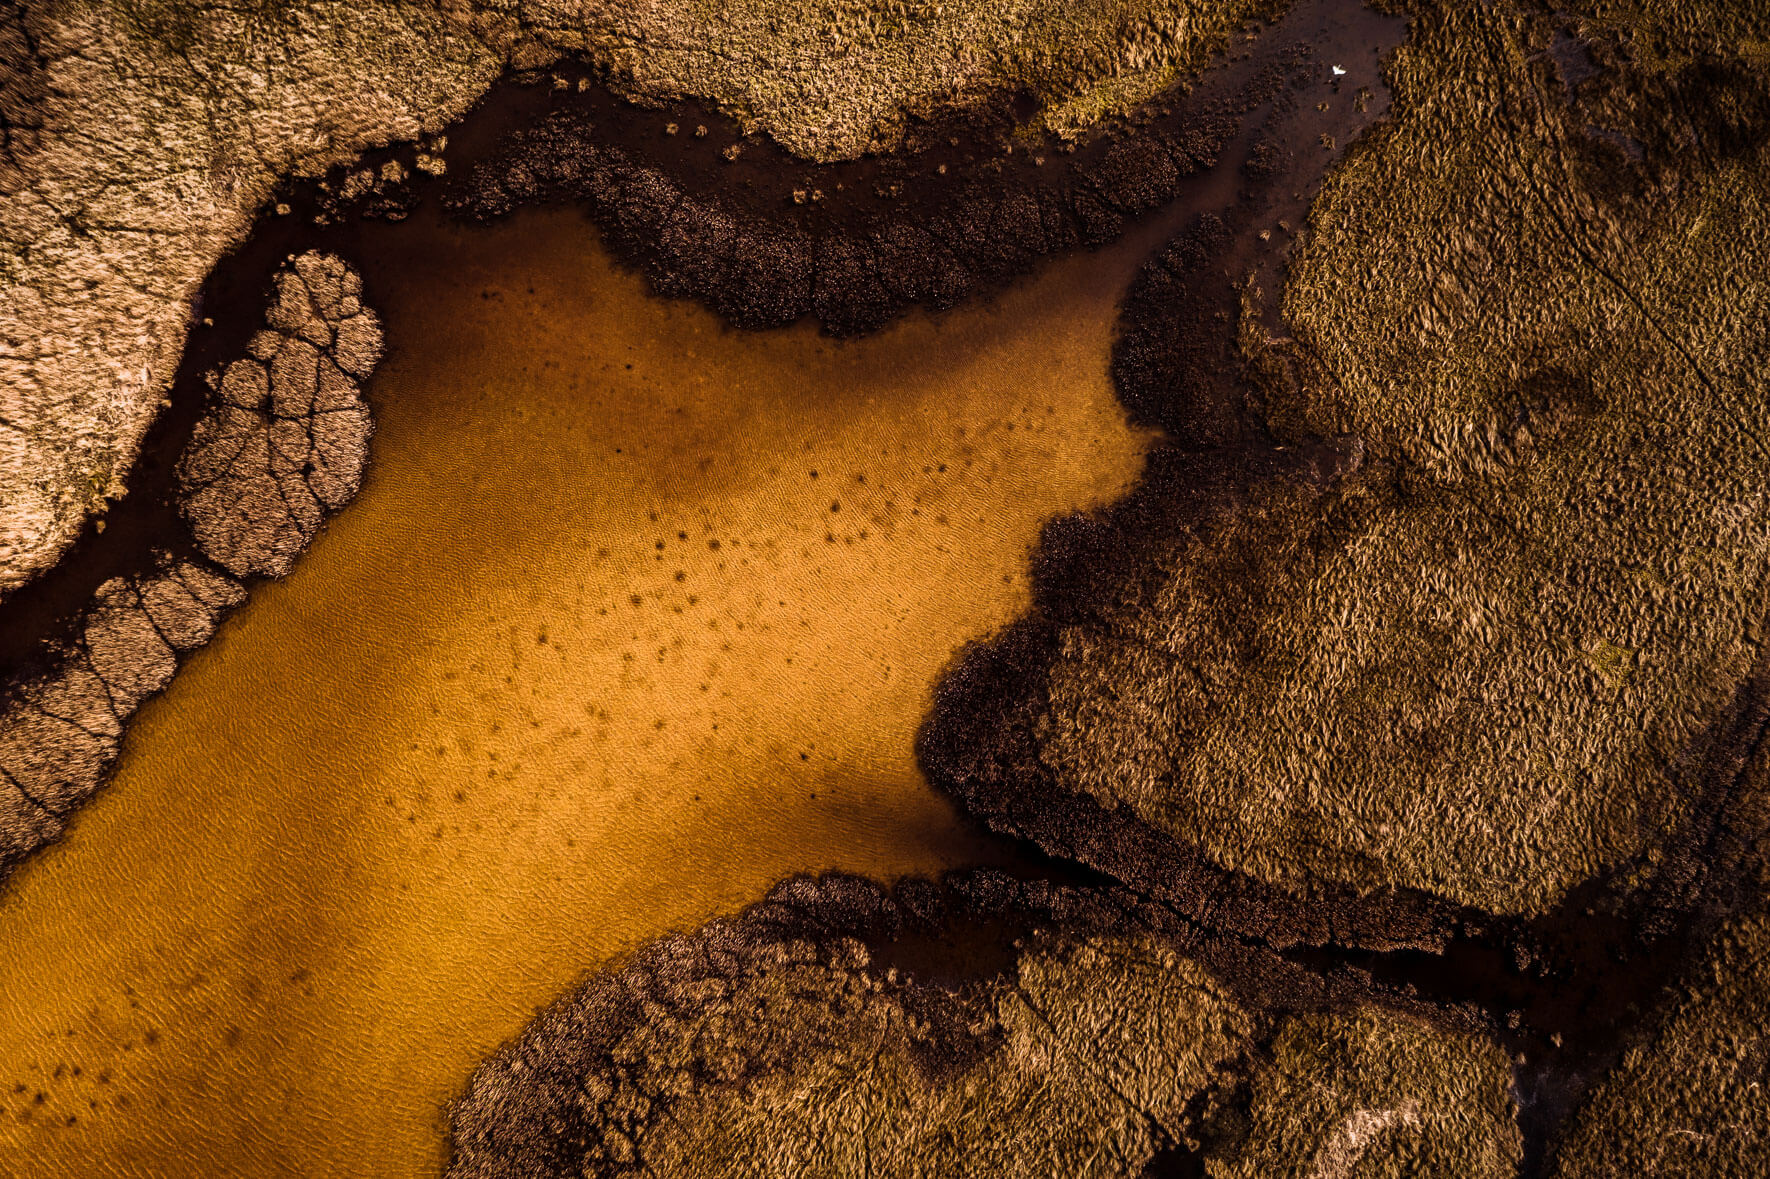 Abstract yellow lake from aerial perspective